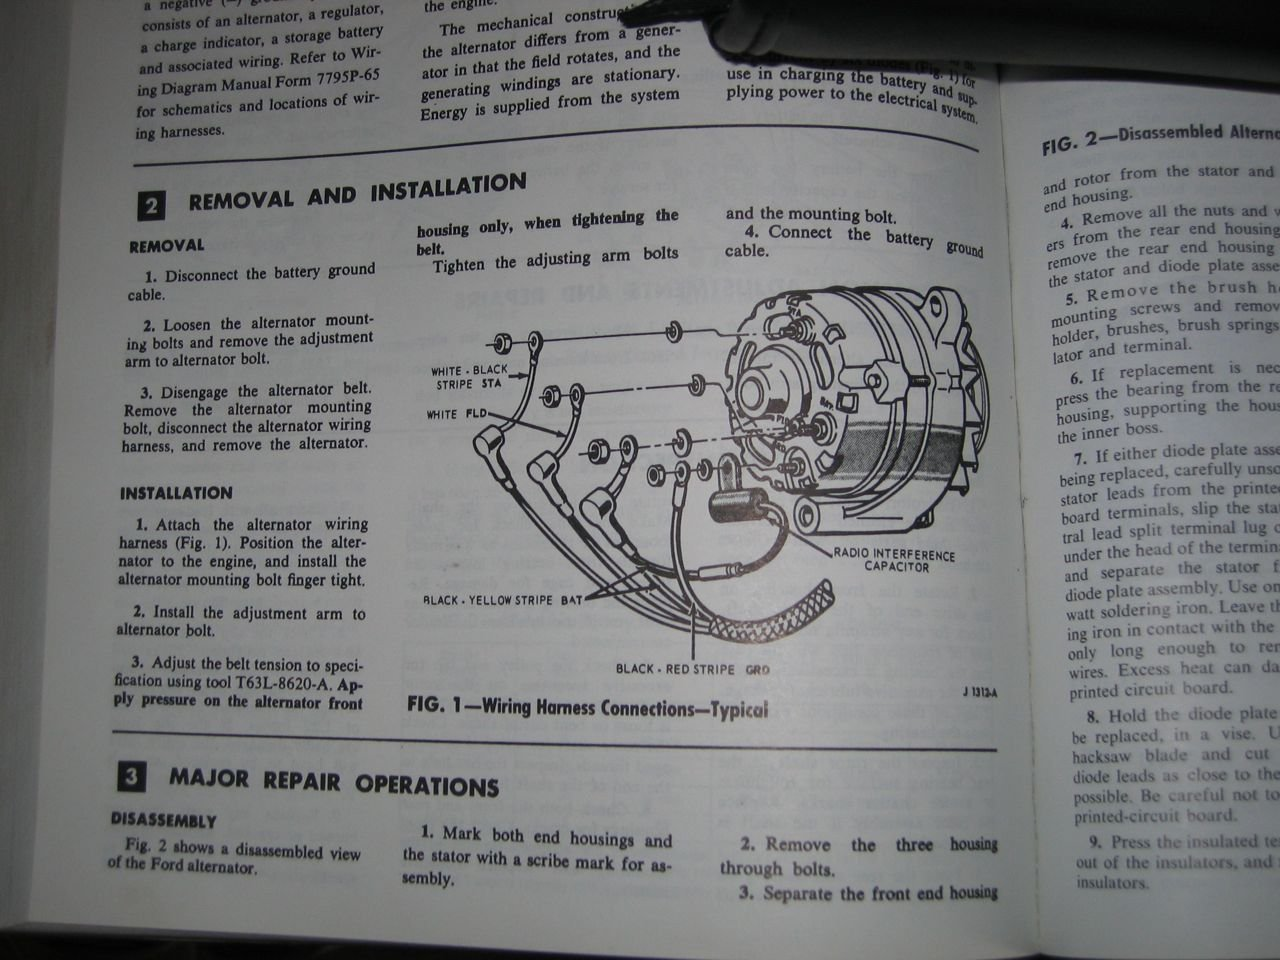 93328d1268767403 1966 mustang alternator wiring img_0749 1966 mustang alternator wiring ford mustang forum 1965 mustang alternator wiring diagram at aneh.co